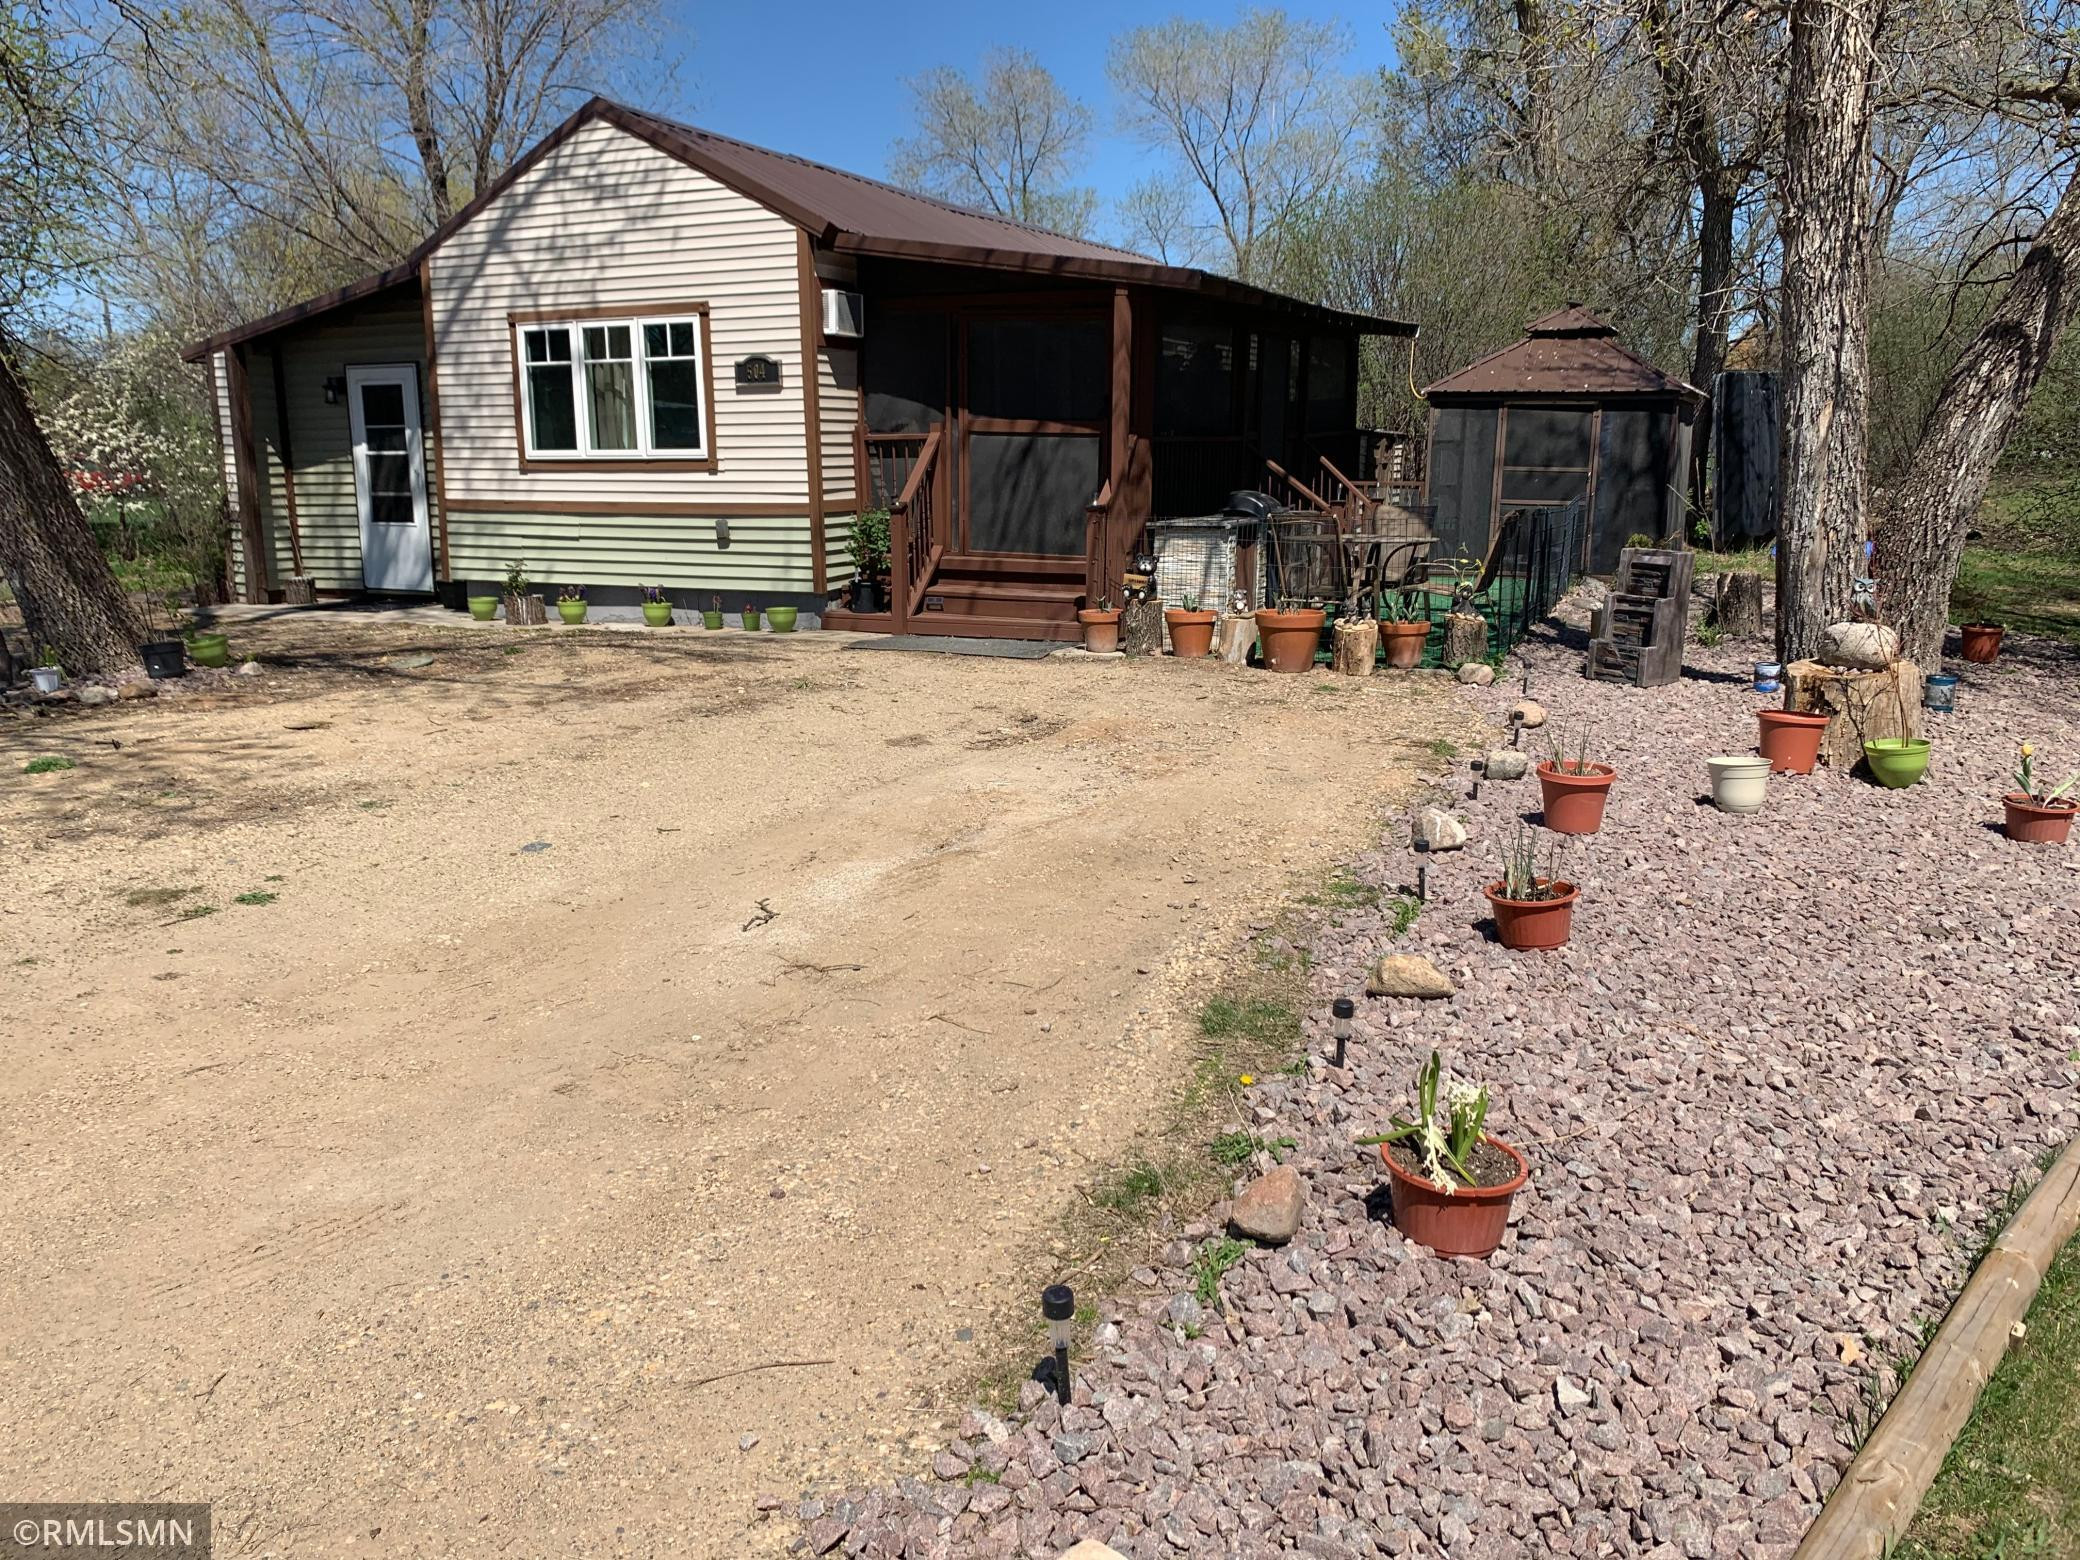 504 2nd Ave. SW Avenue SW, Browns Valley, MN 56219